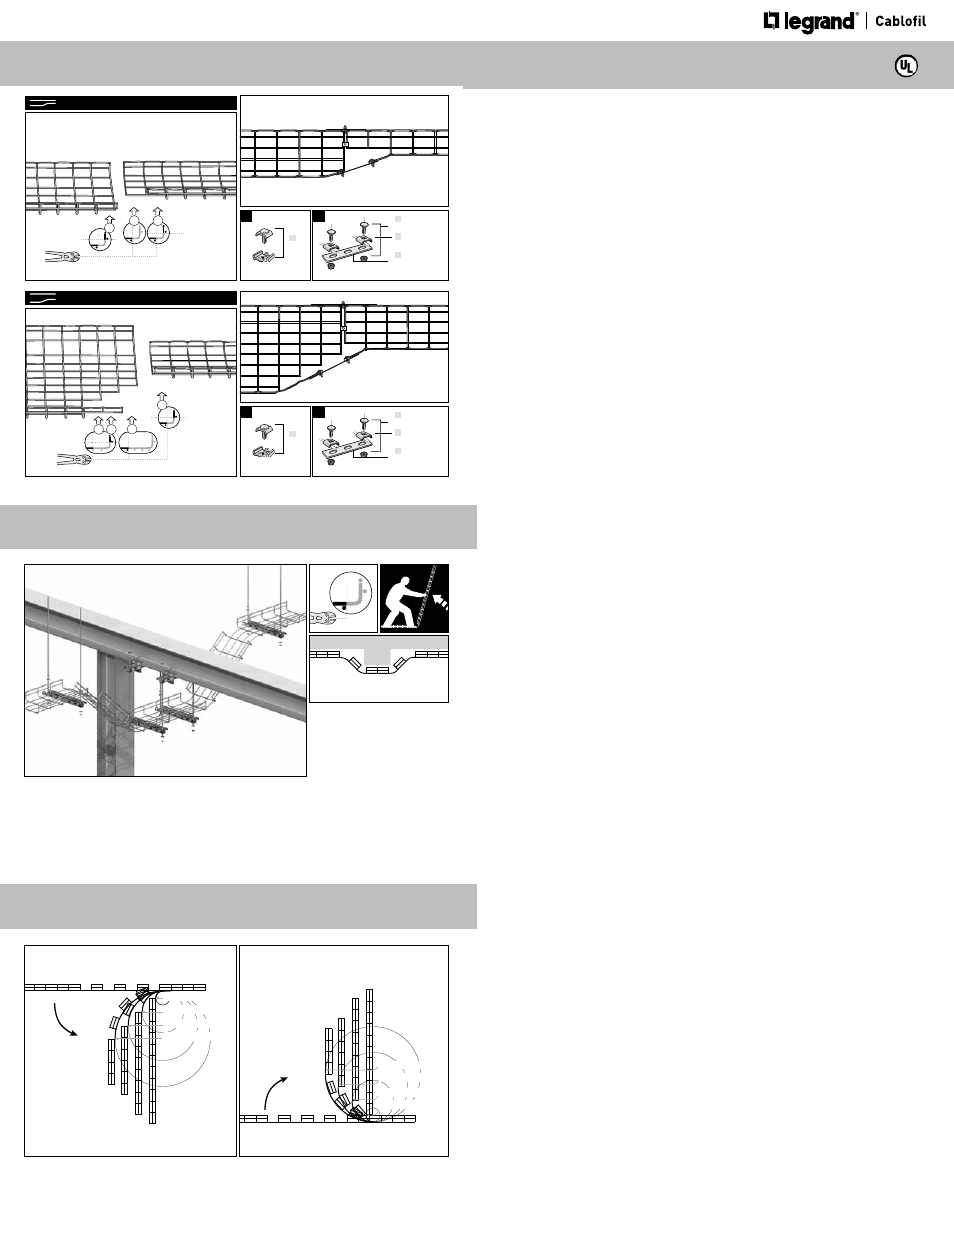 Fas manual array legrand fas l user manual page 11 17 also for fas c uc 50 fandeluxe Images